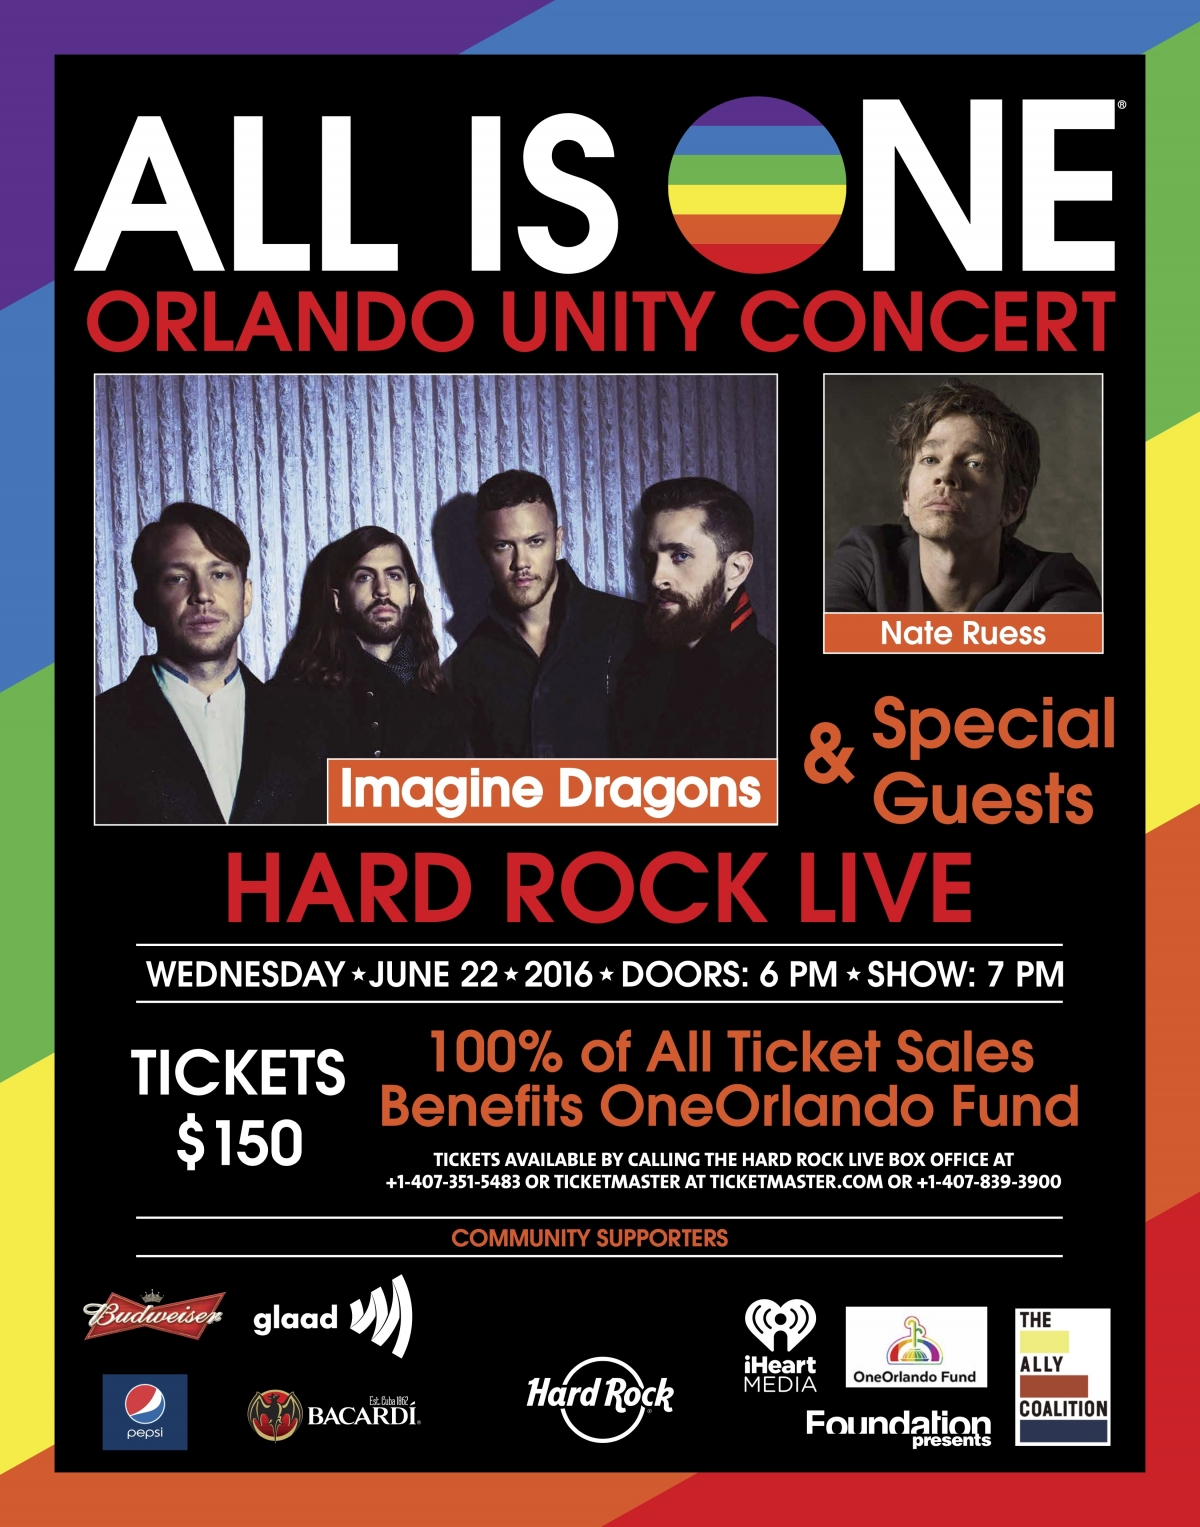 All Is One Orlando Concert